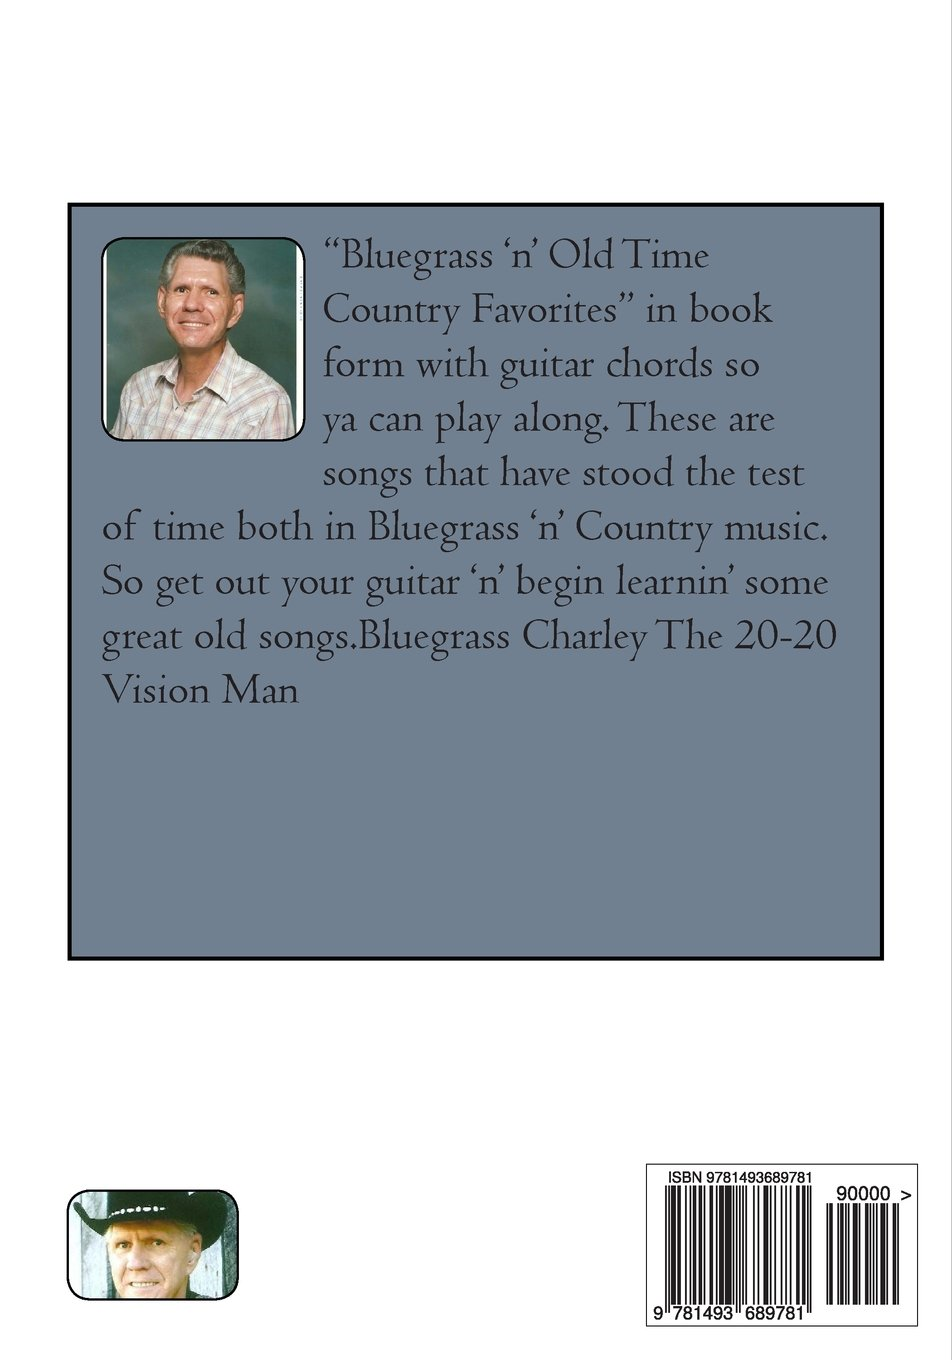 Amazon Bluegrass Charleys Bluegrass N Old Time Country